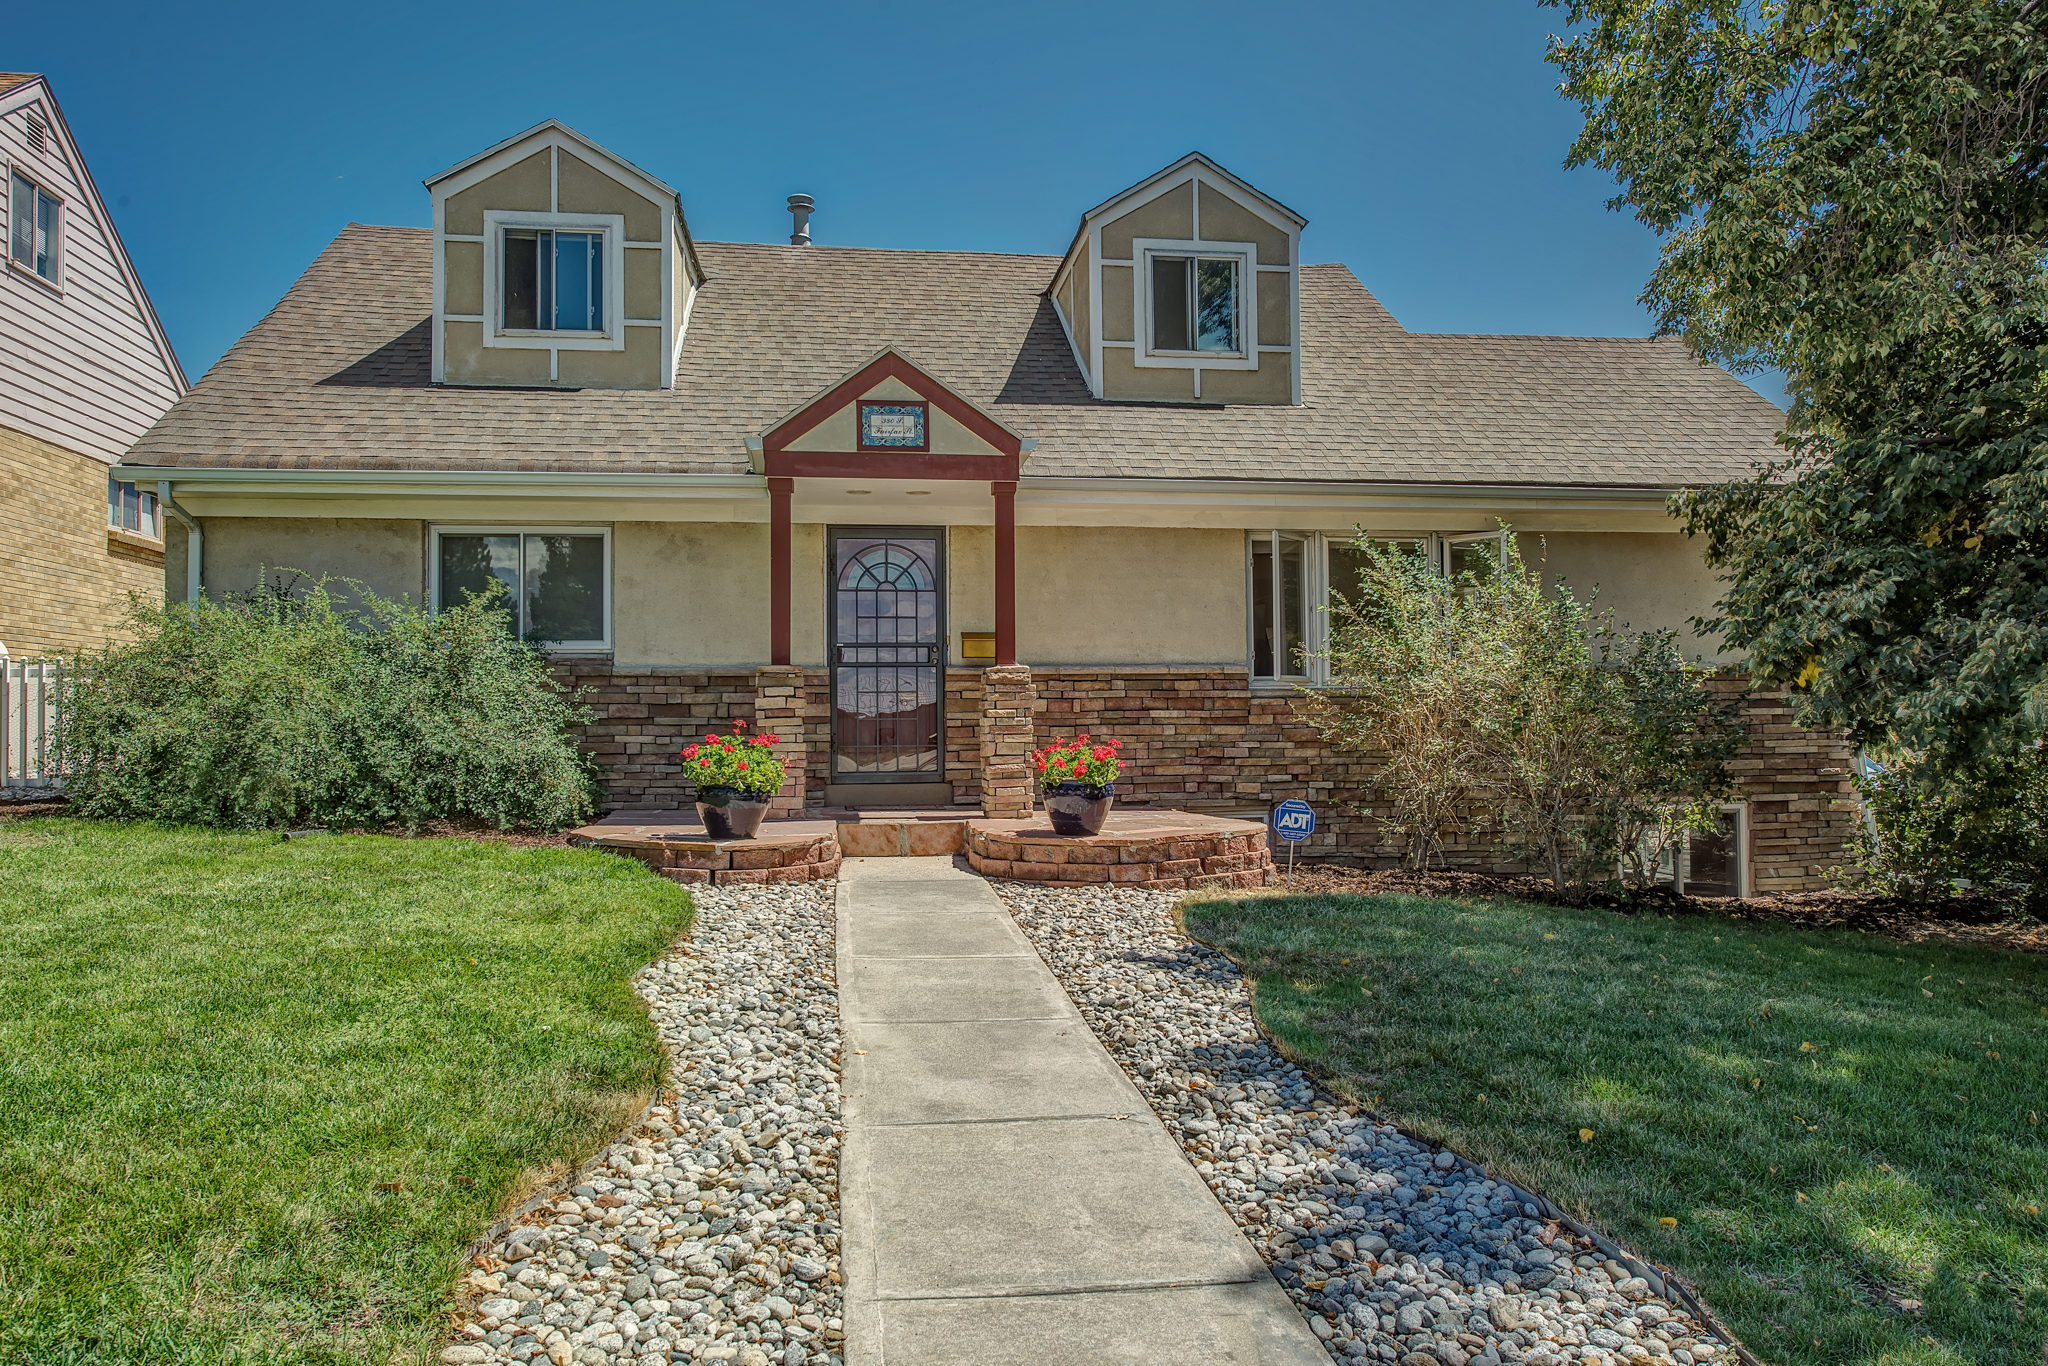 Single Family Home for Sale at Great Location 380 South Fairfax Street Denver, Colorado 80246 United States